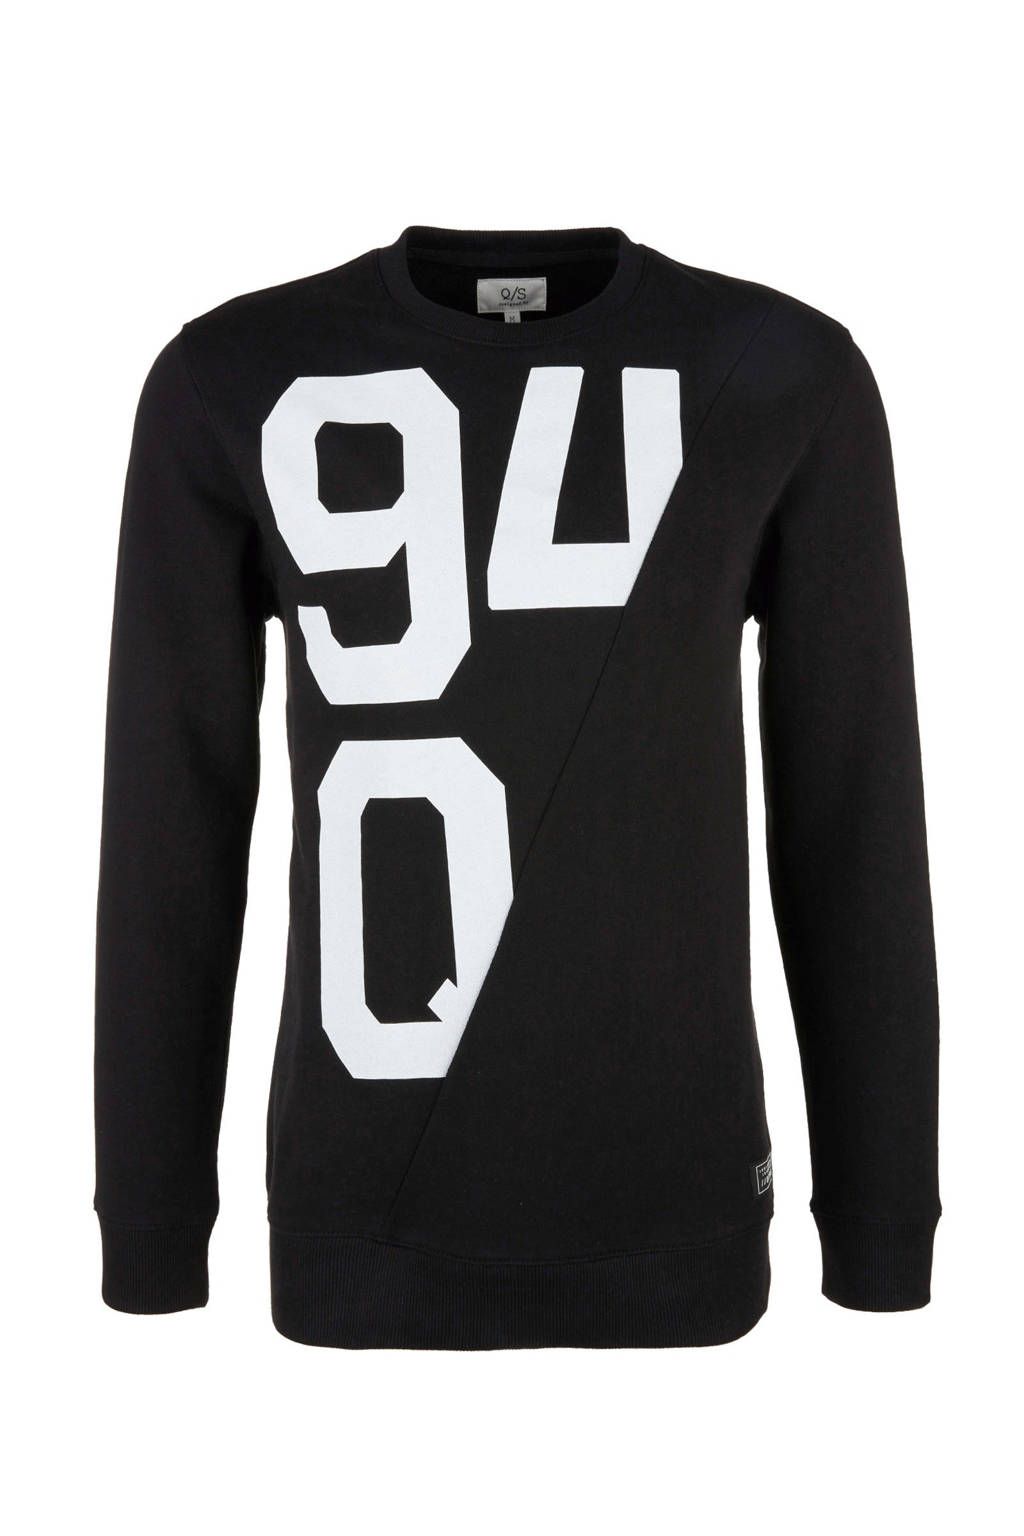 Q/S designed by sweater met printopdruk, Zwart